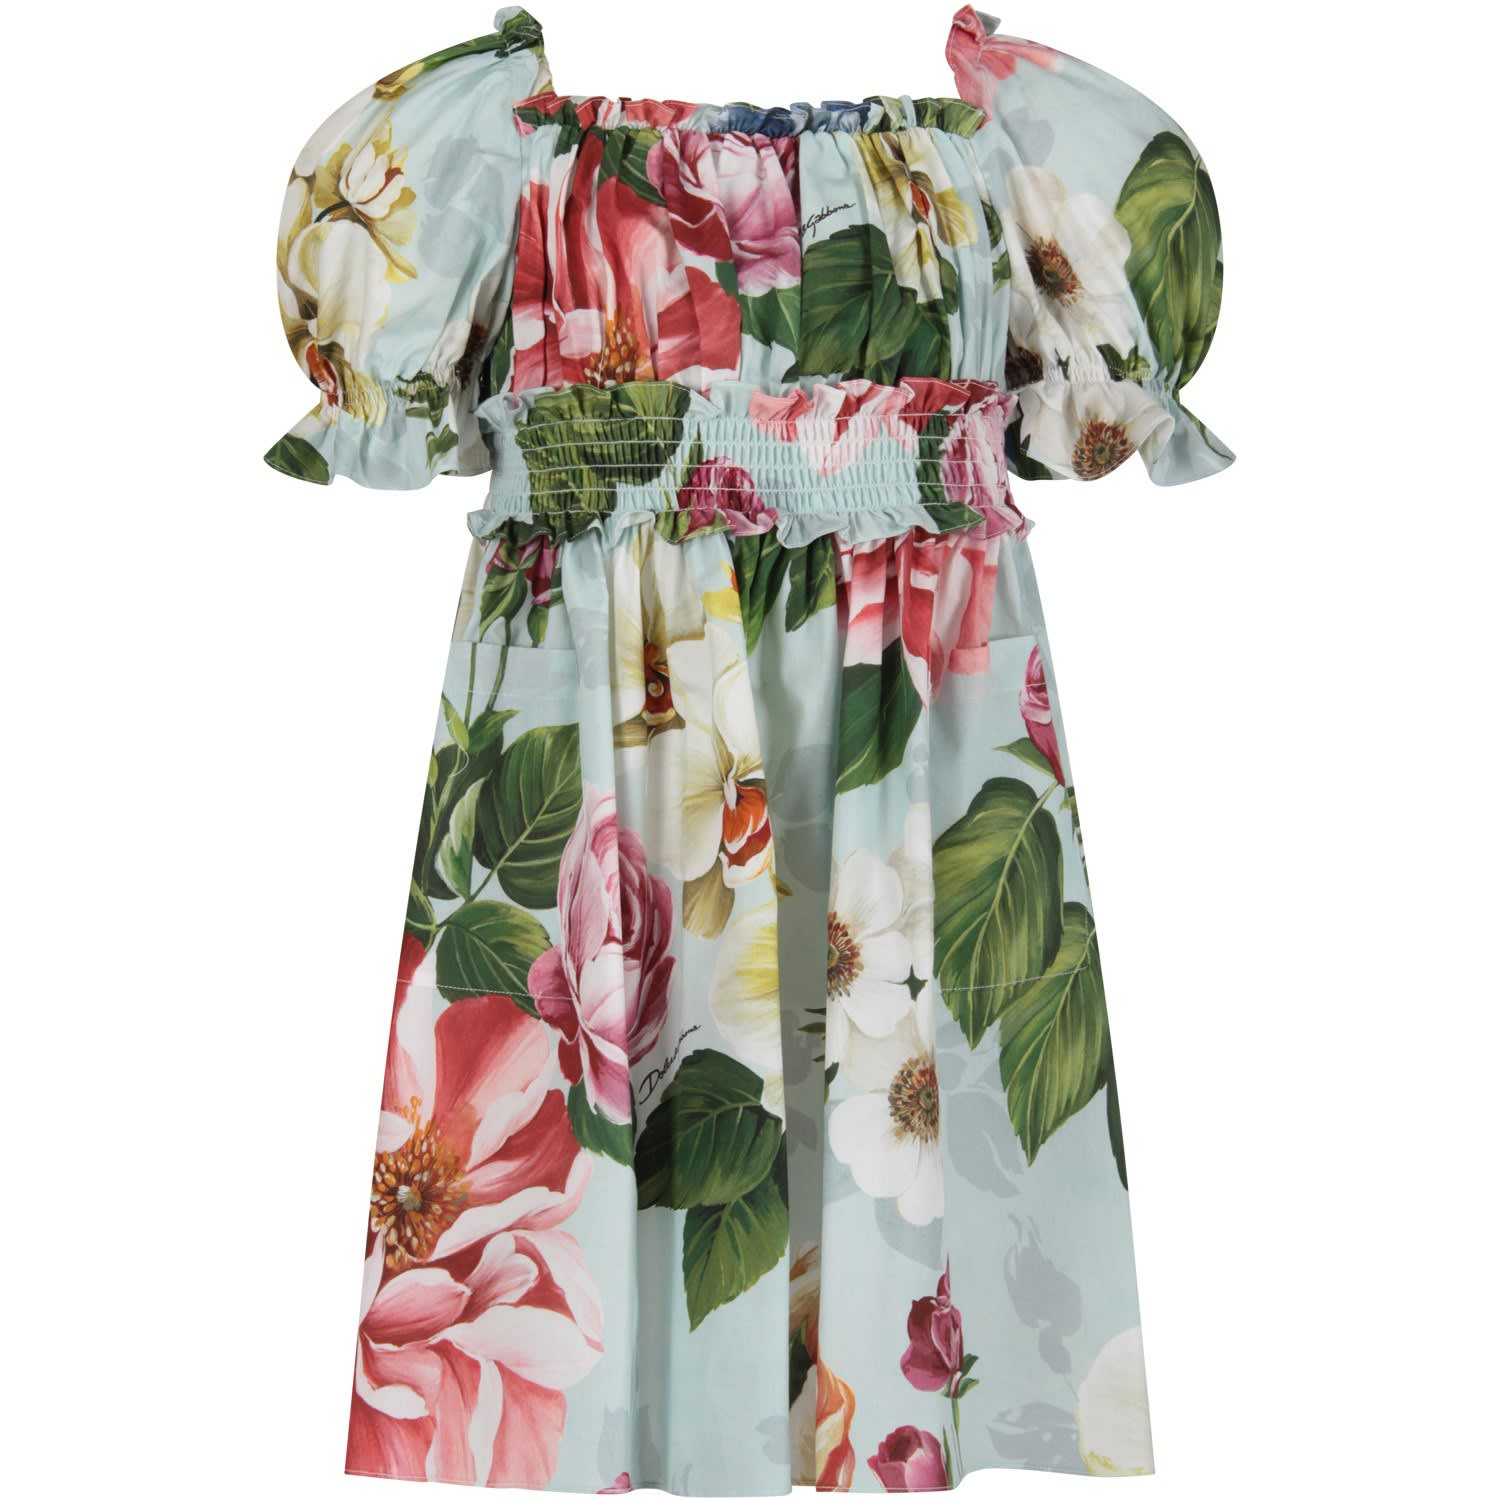 Buy Dolce & Gabbana Light Blue Girl Dress With Colorful Flowers online, shop Dolce & Gabbana with free shipping